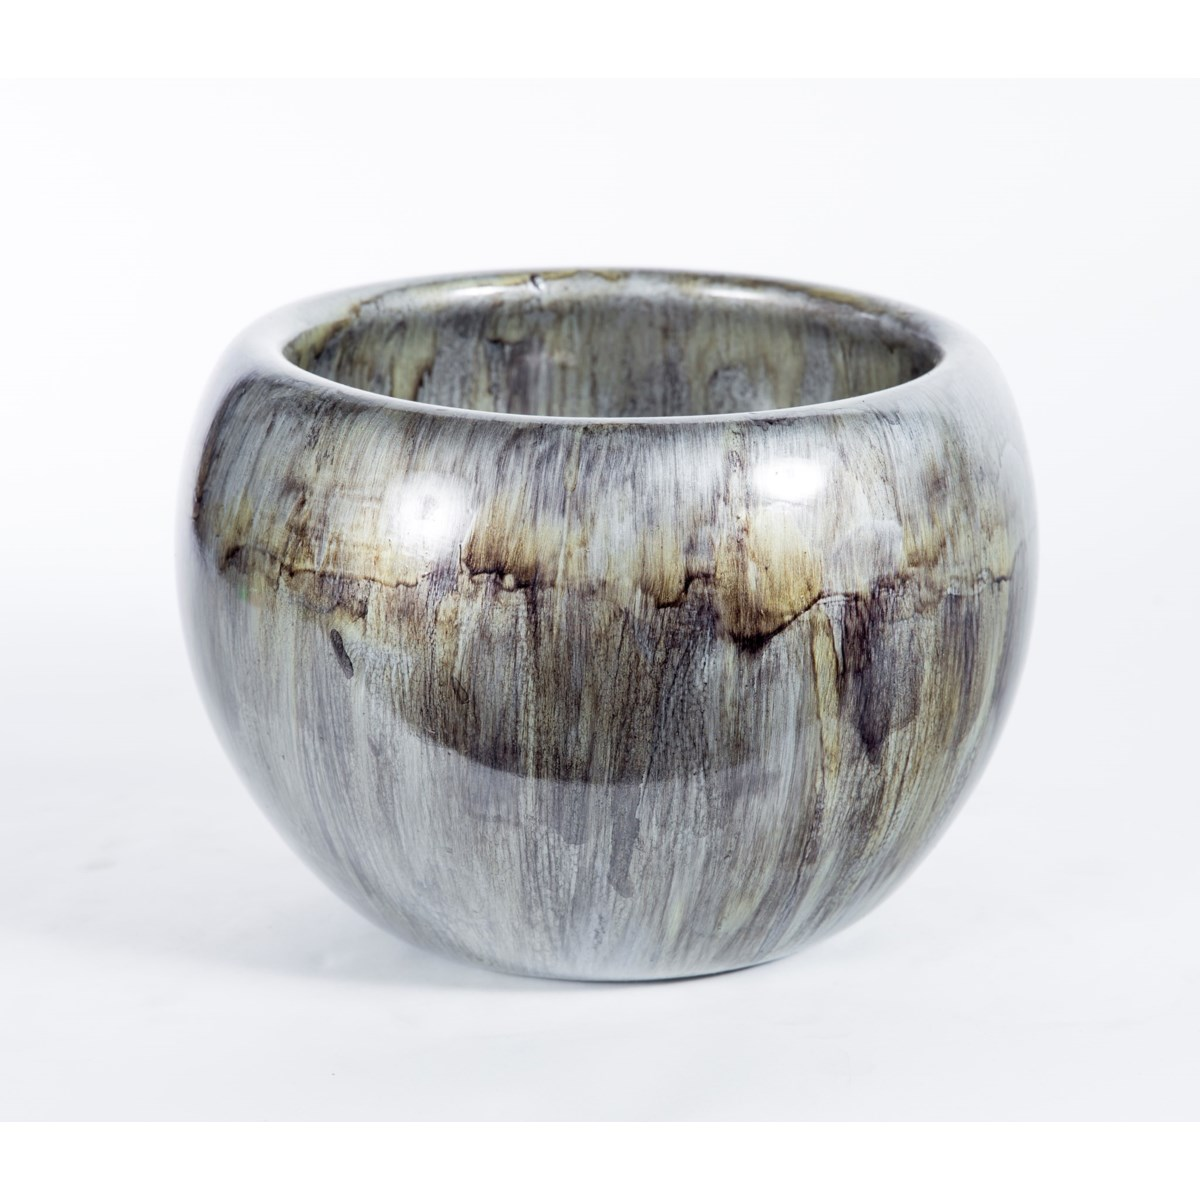 Double Sided Bowl in Concord